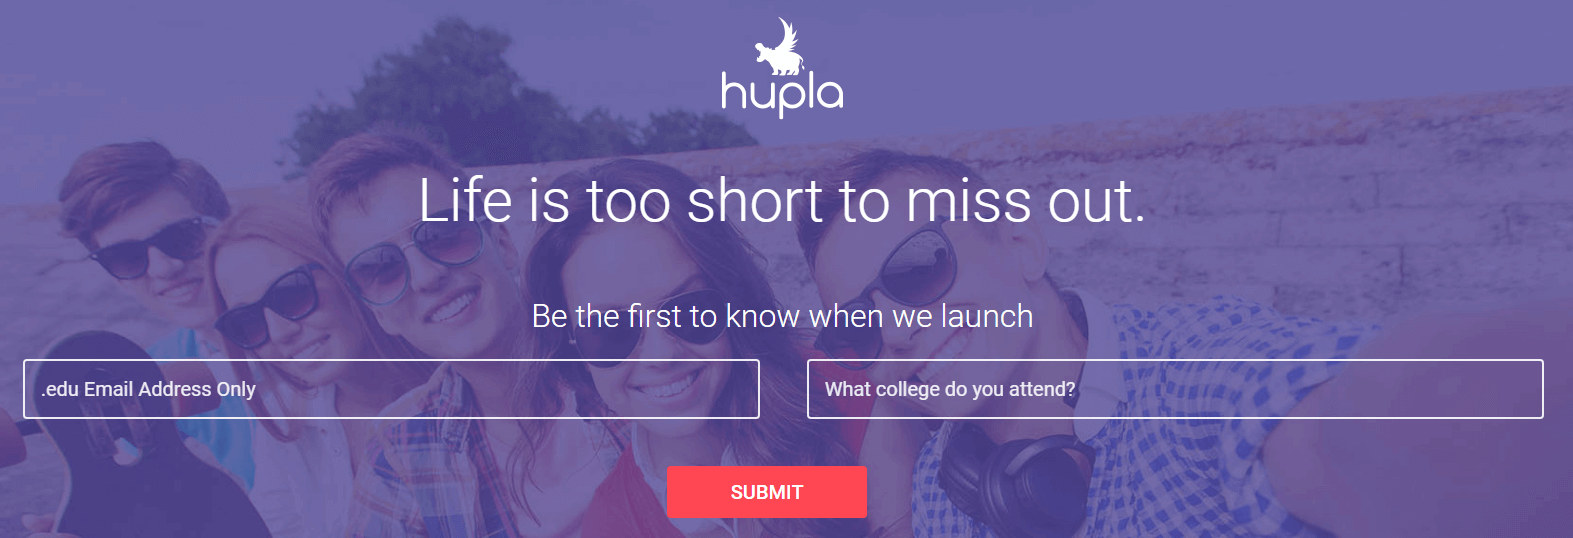 The Hupla website.